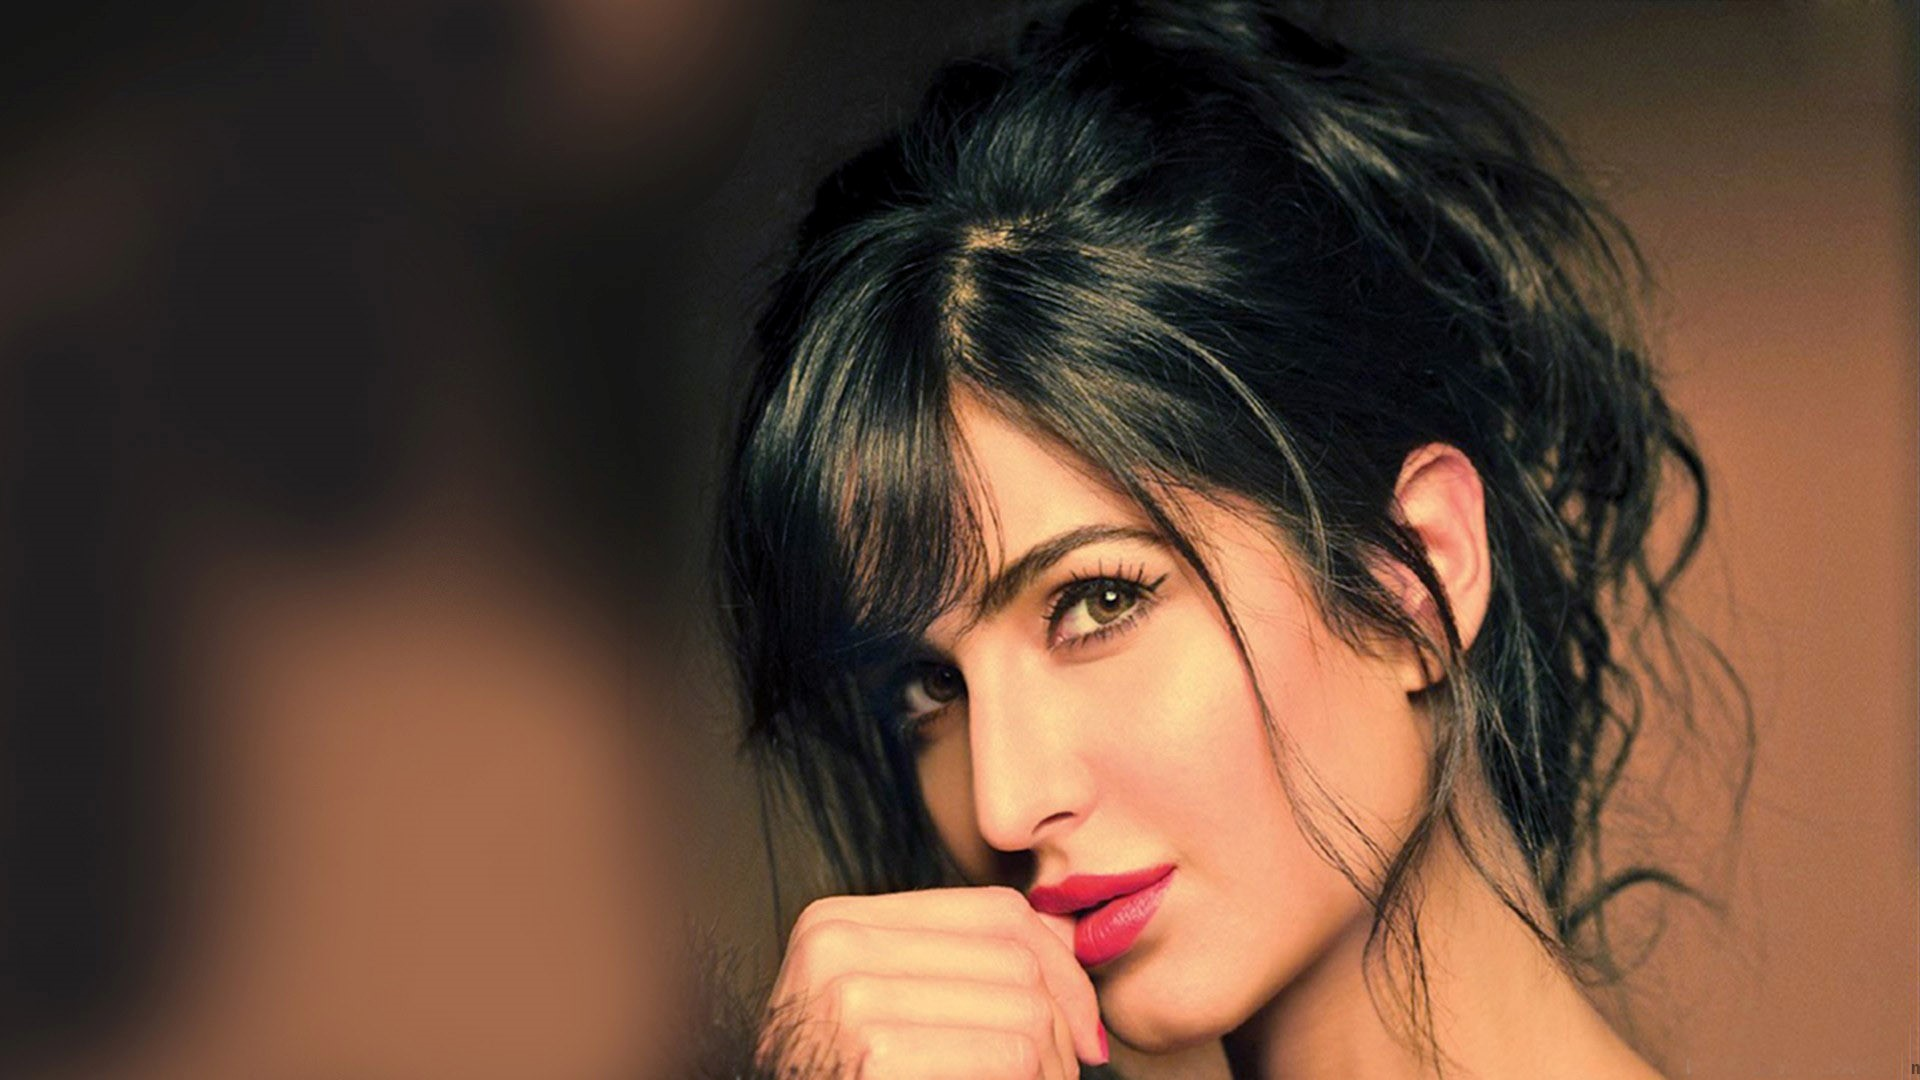 Katrina-kaif beautiful wallpapers